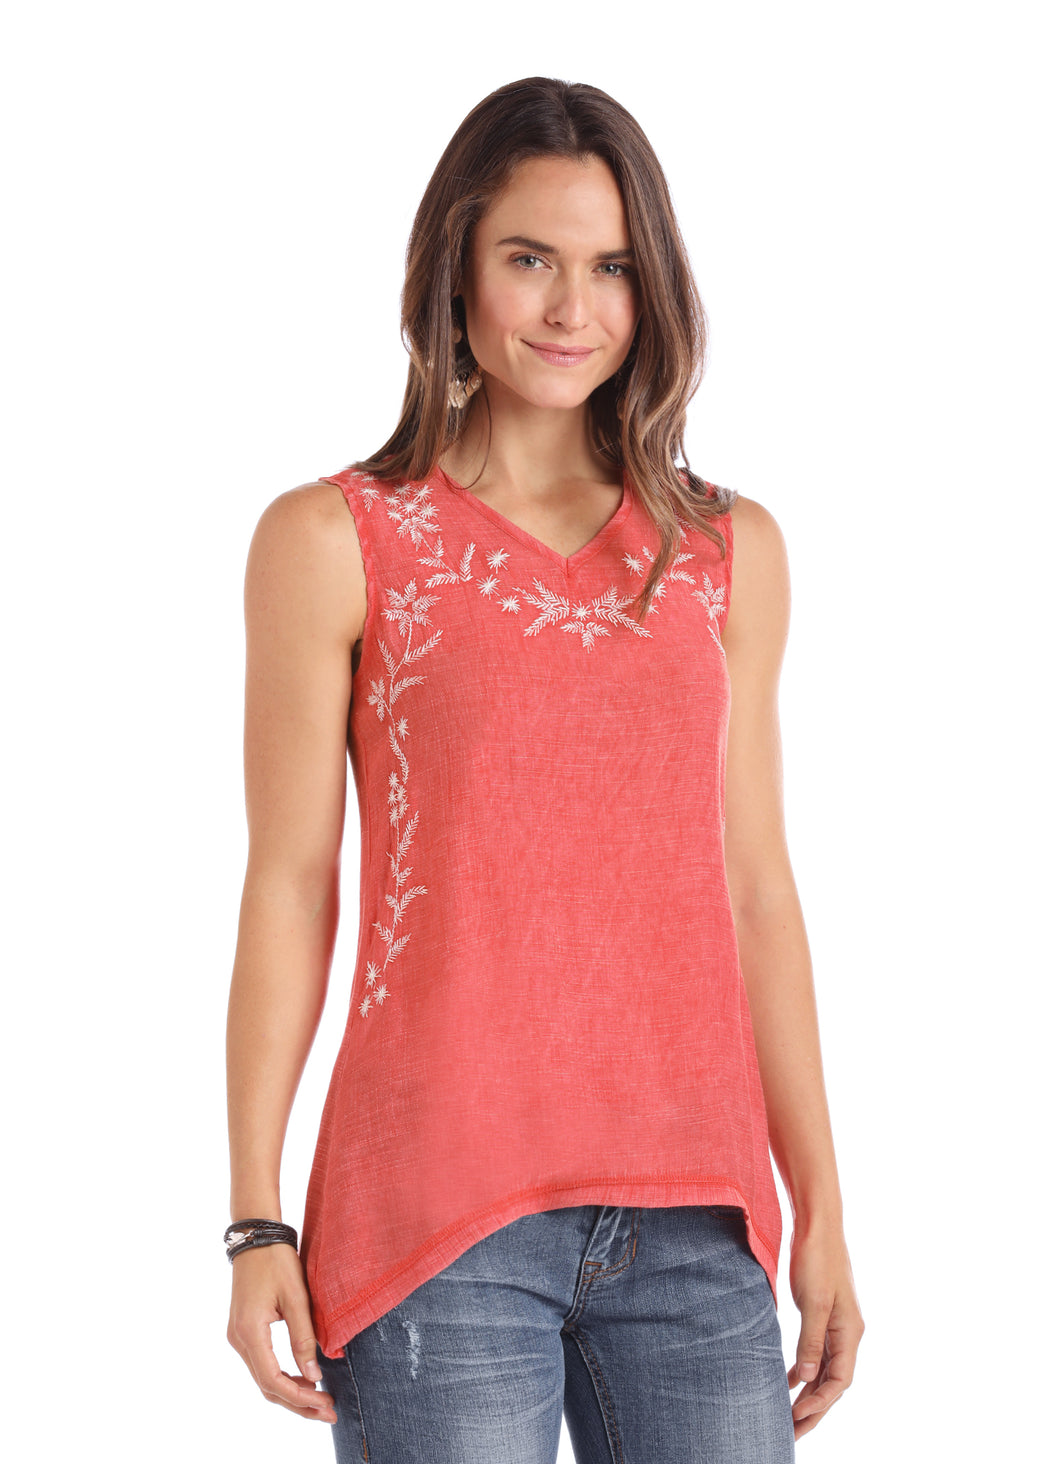 'Panhandle Slim' Embroidered Tank Top - Red